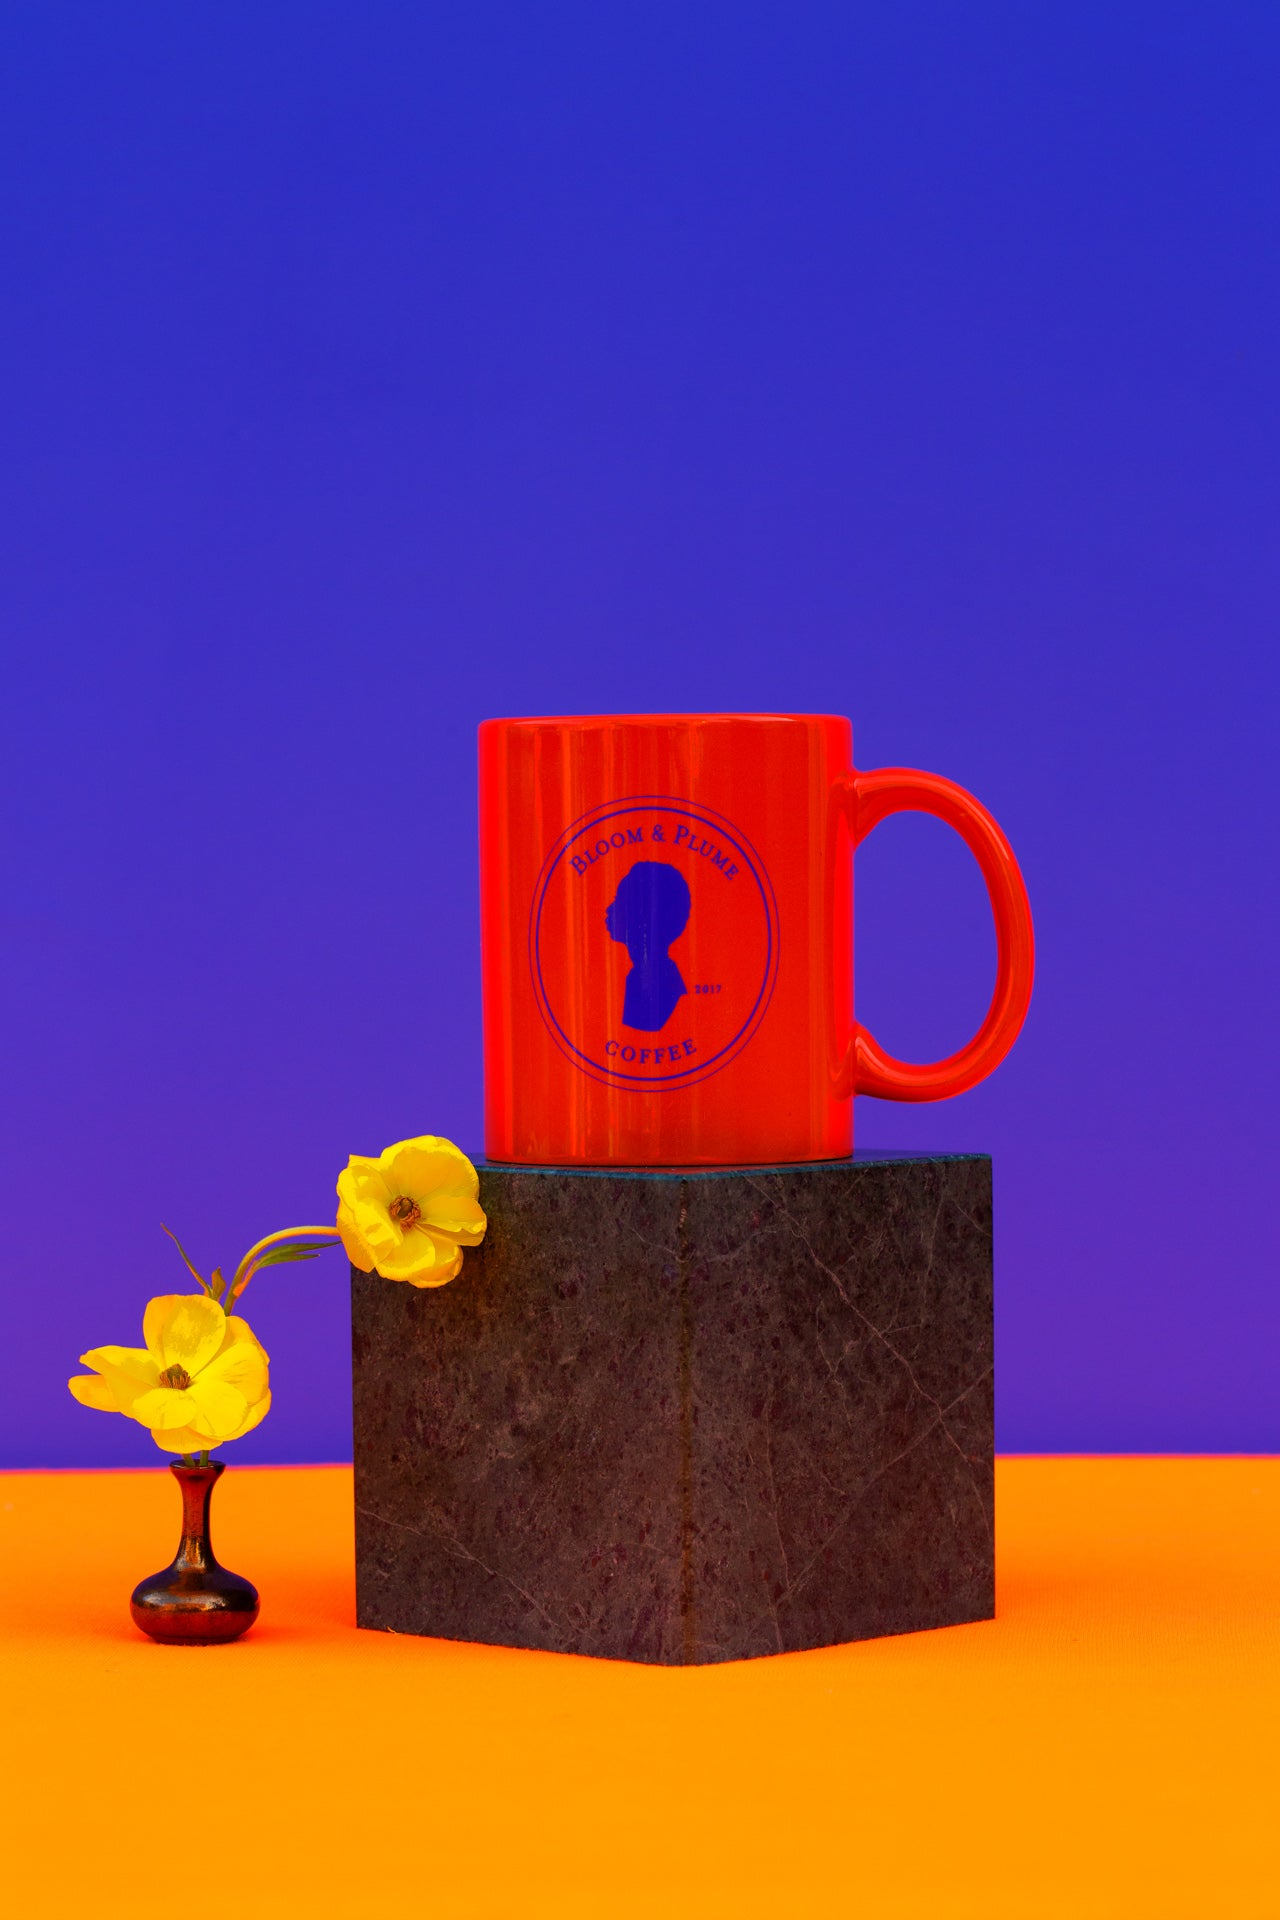 orange colored mug with bloom and plume seal